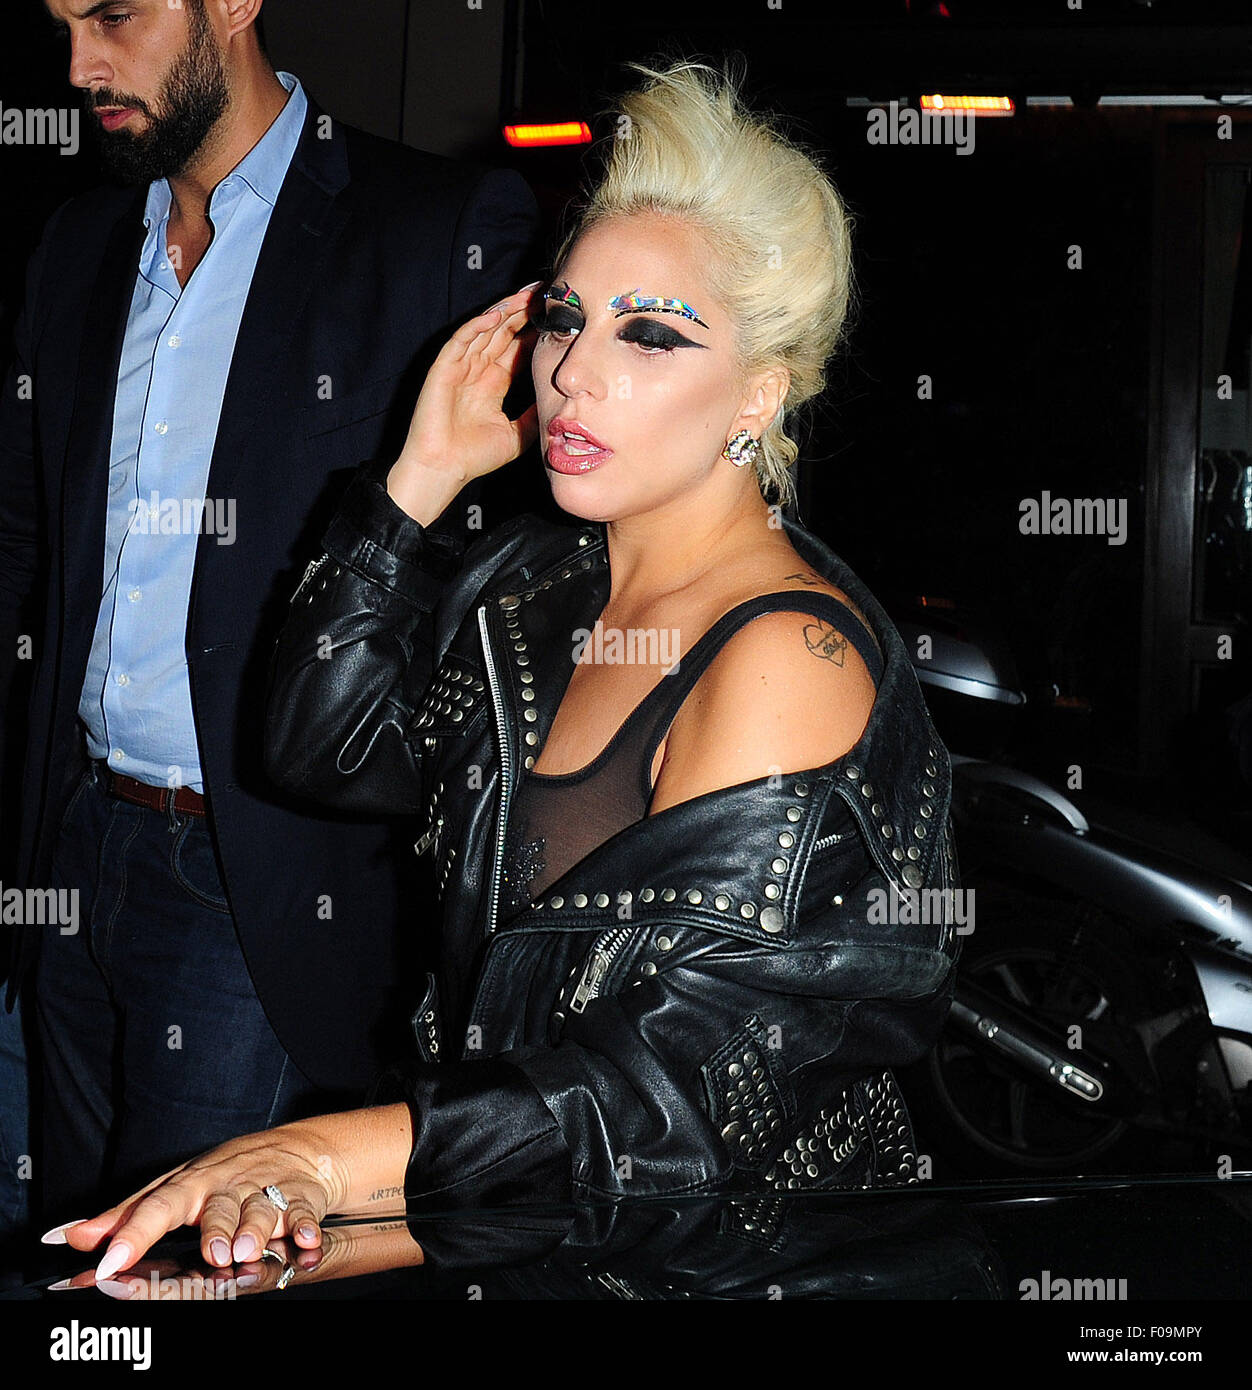 Lady Gaga departing Ronnie Scotts and being swamped by the